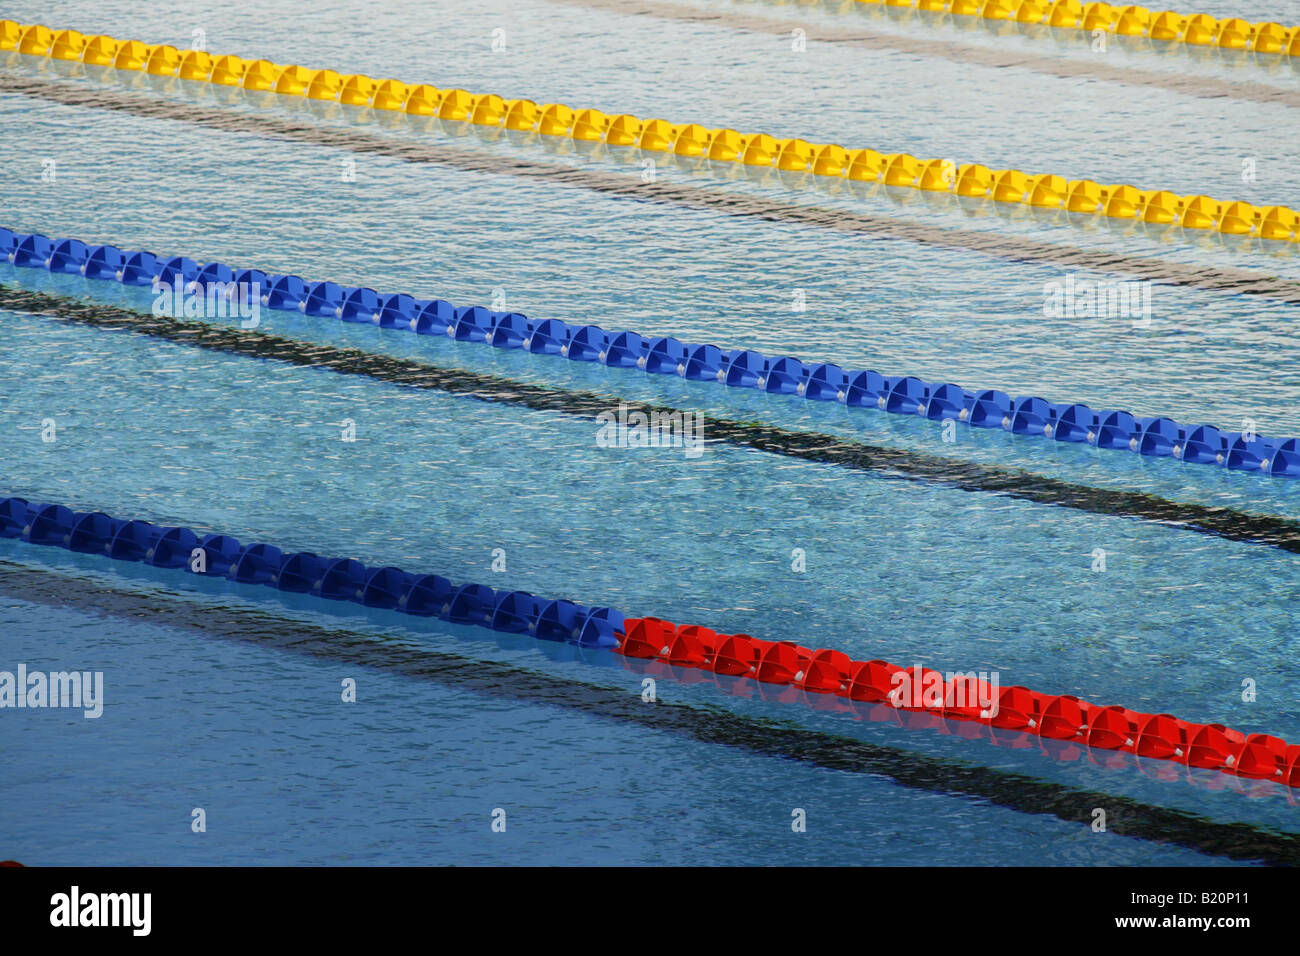 empty olympic size swimming pool with lanes - Olympic Swimming Pool Lanes